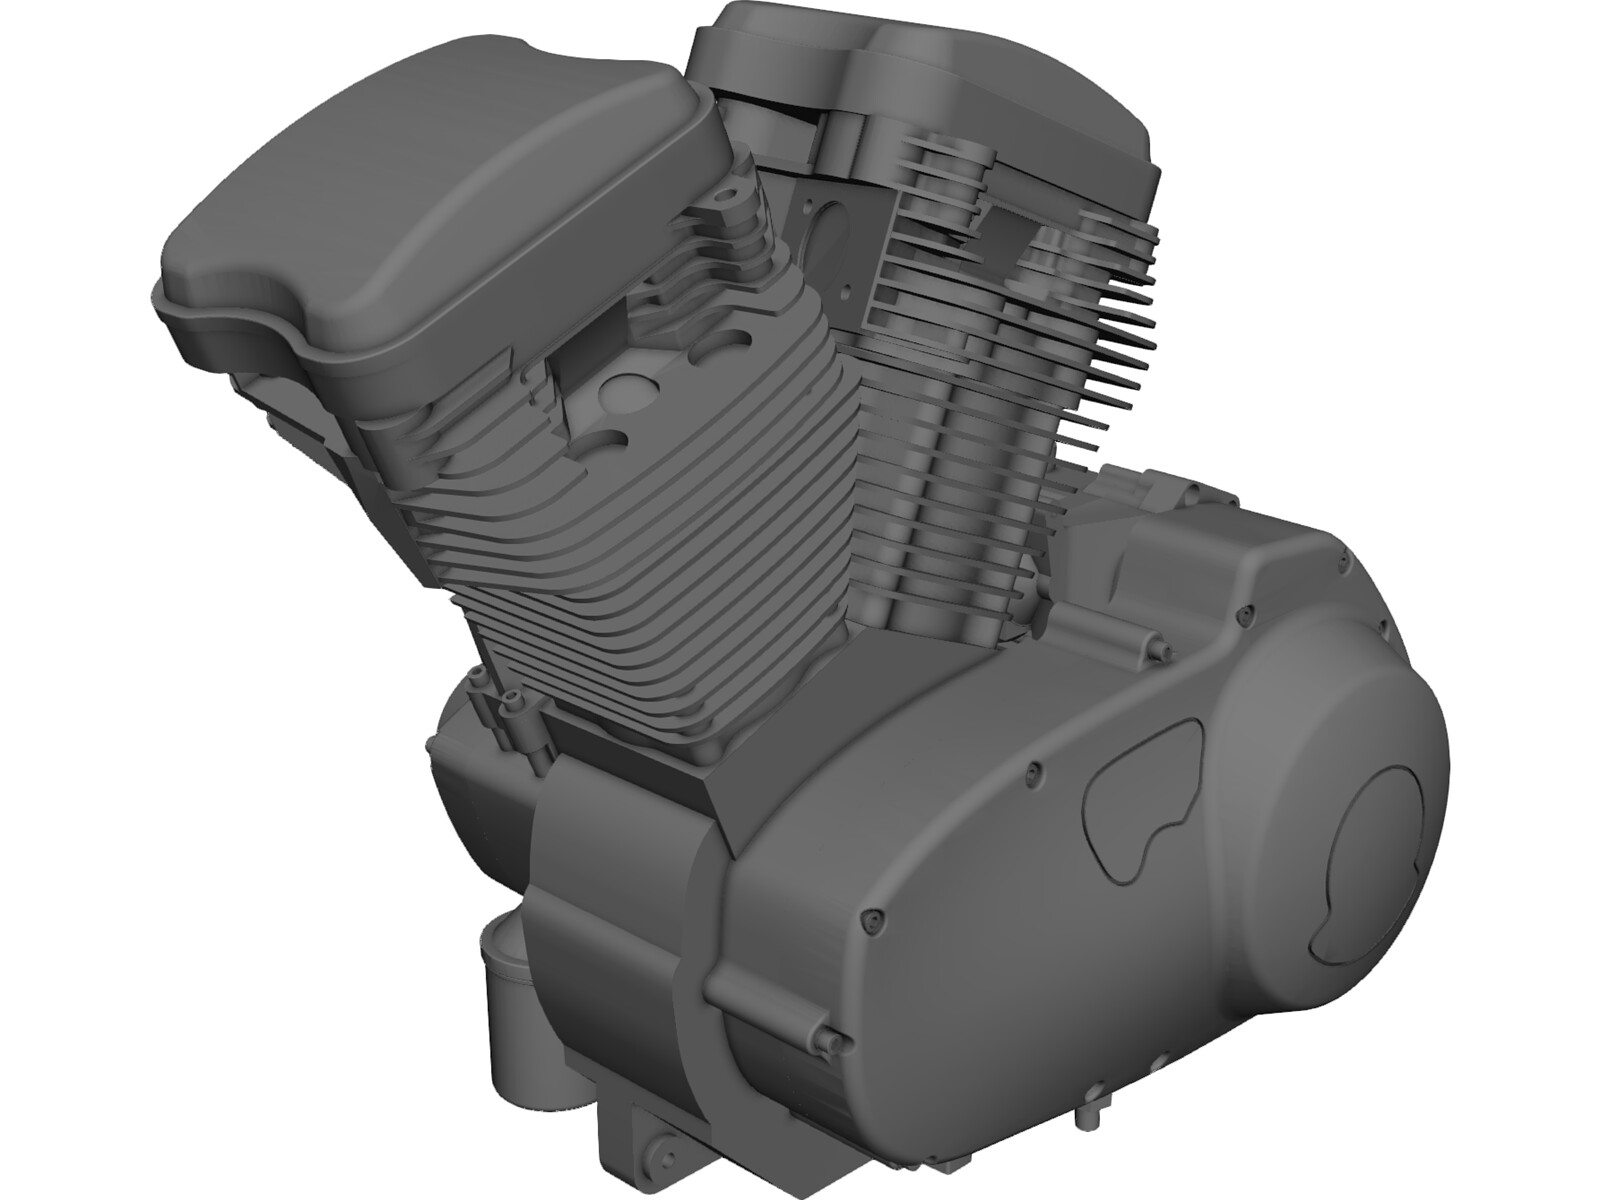 Buell XB9R Engine 3D Model